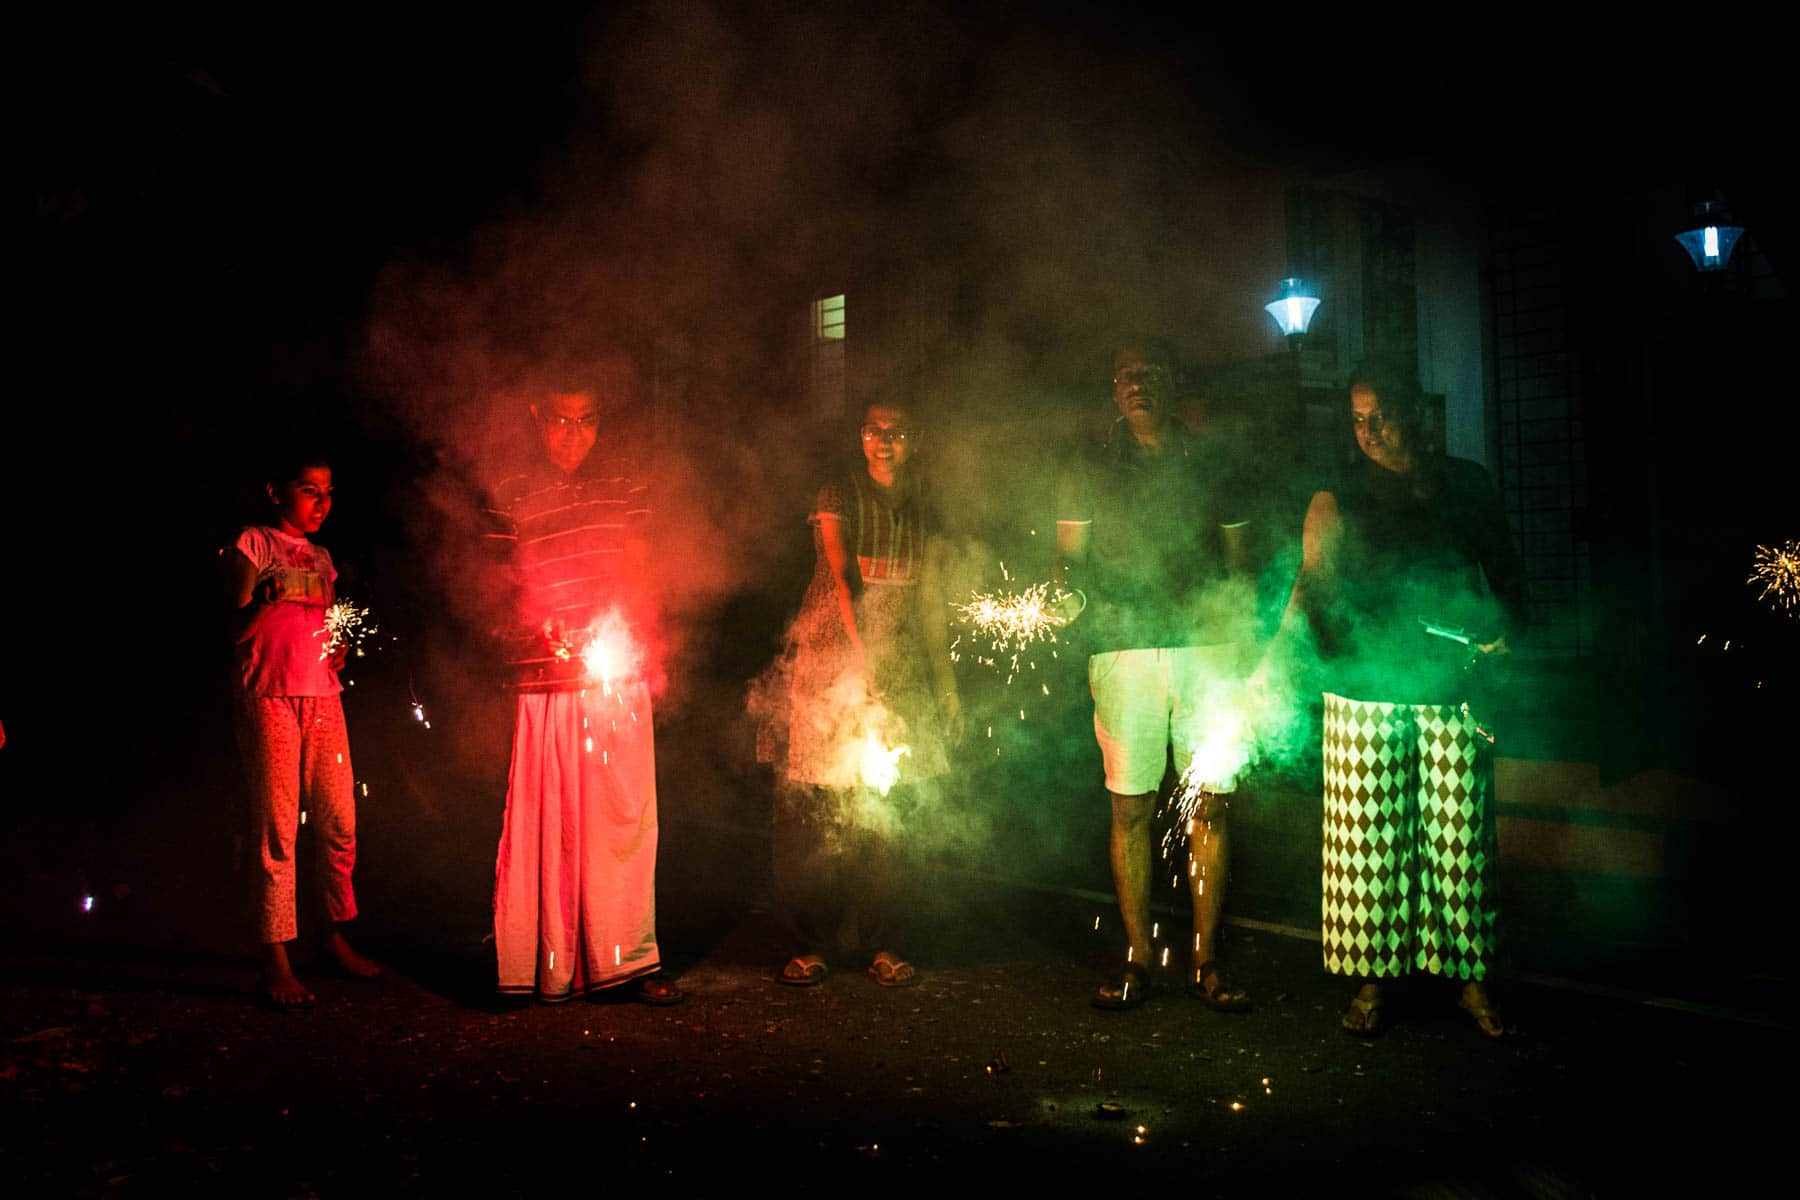 A family celebrating Diwali in Chennai, India - Lost With Purpose